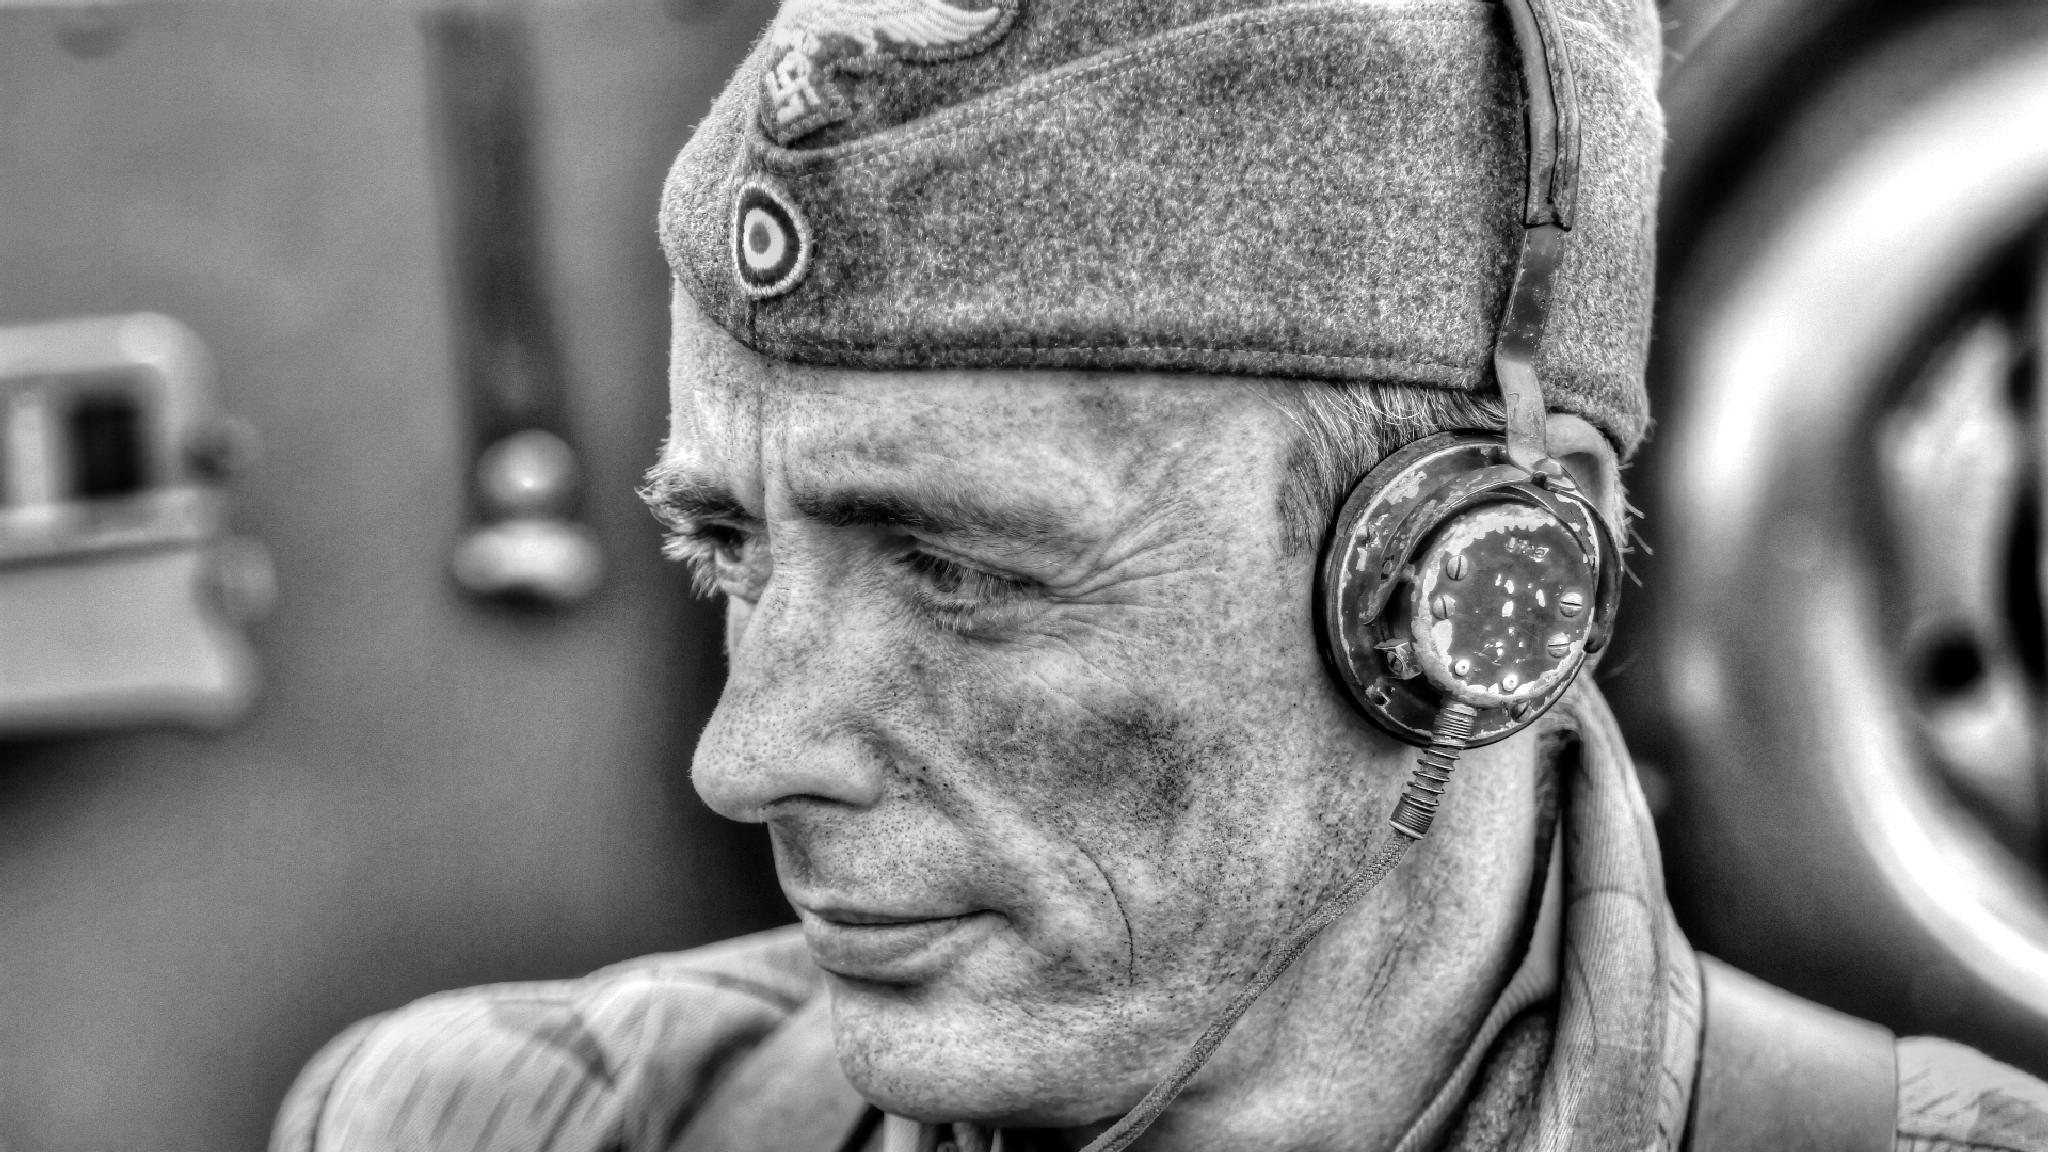 Soldiers portrais two by Peter Emmert